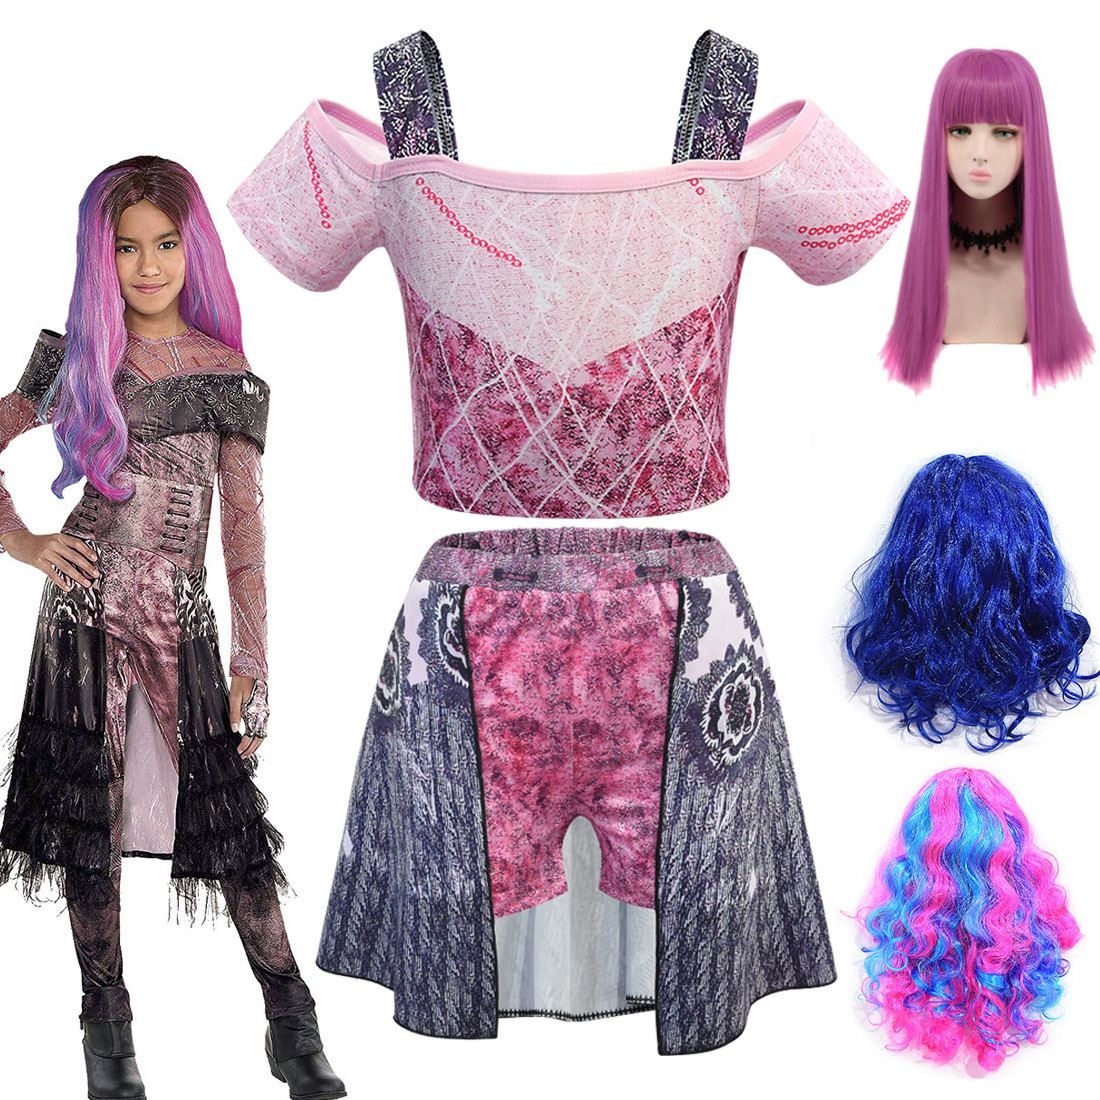 Summer Hot Audrey Costumes Descendants 3 Mal Cosplay Girl Clothing Children's Girls Swimwear Suit Word Shoulder Swimsuit And Wig